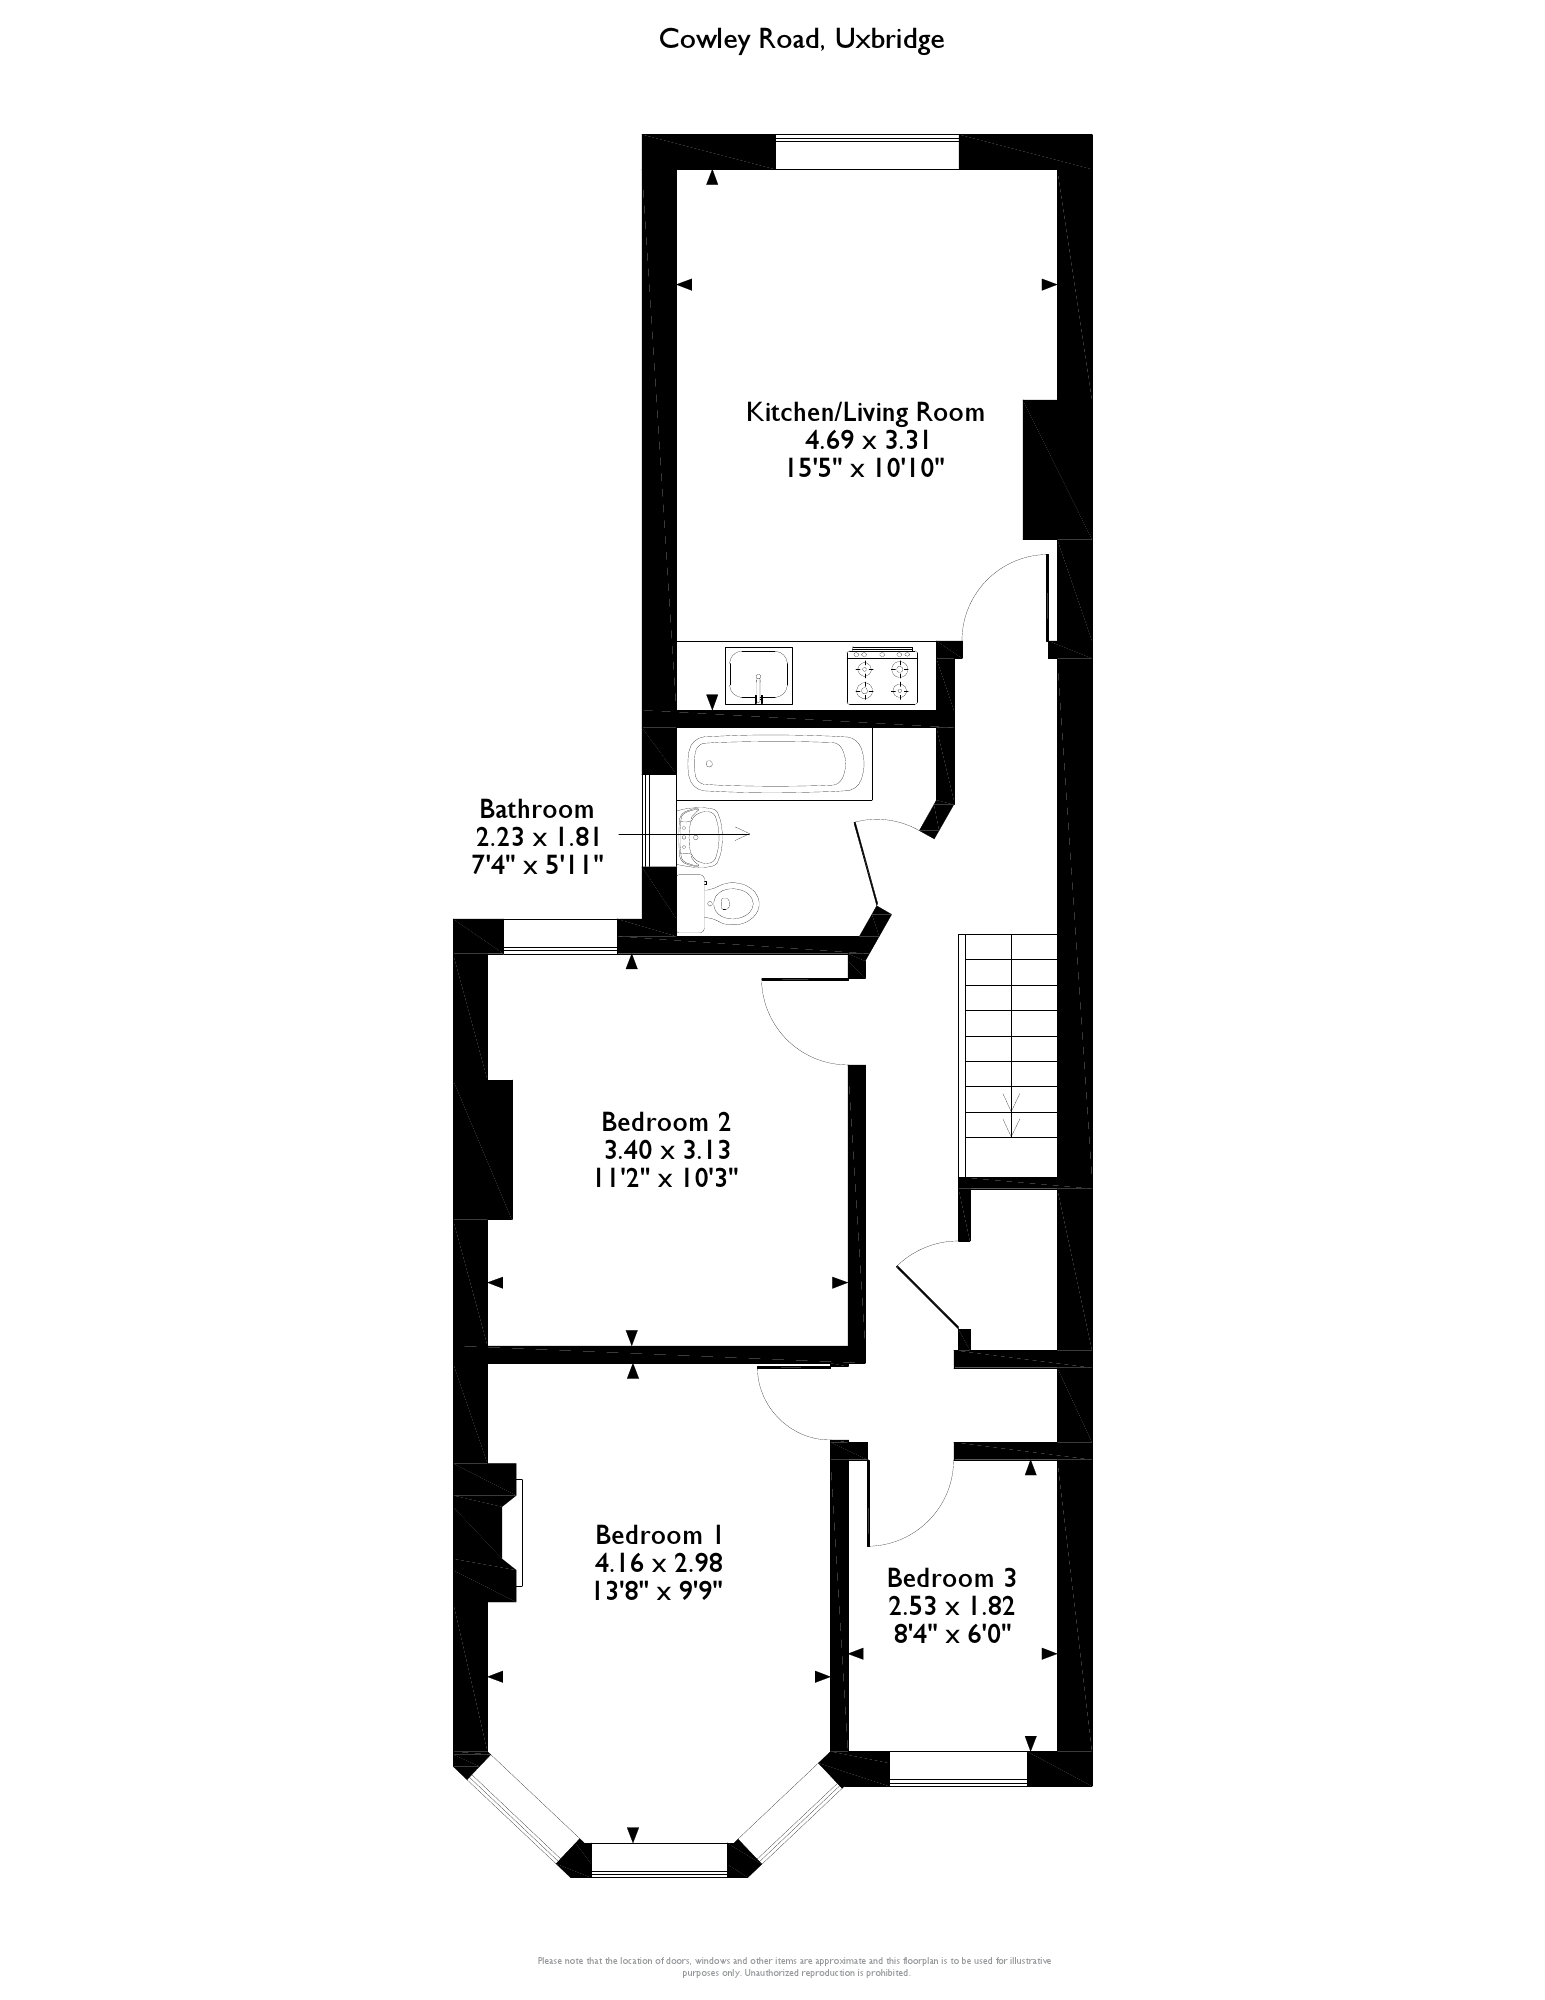 Cowley Road, Uxbridge, UB8 floor plan